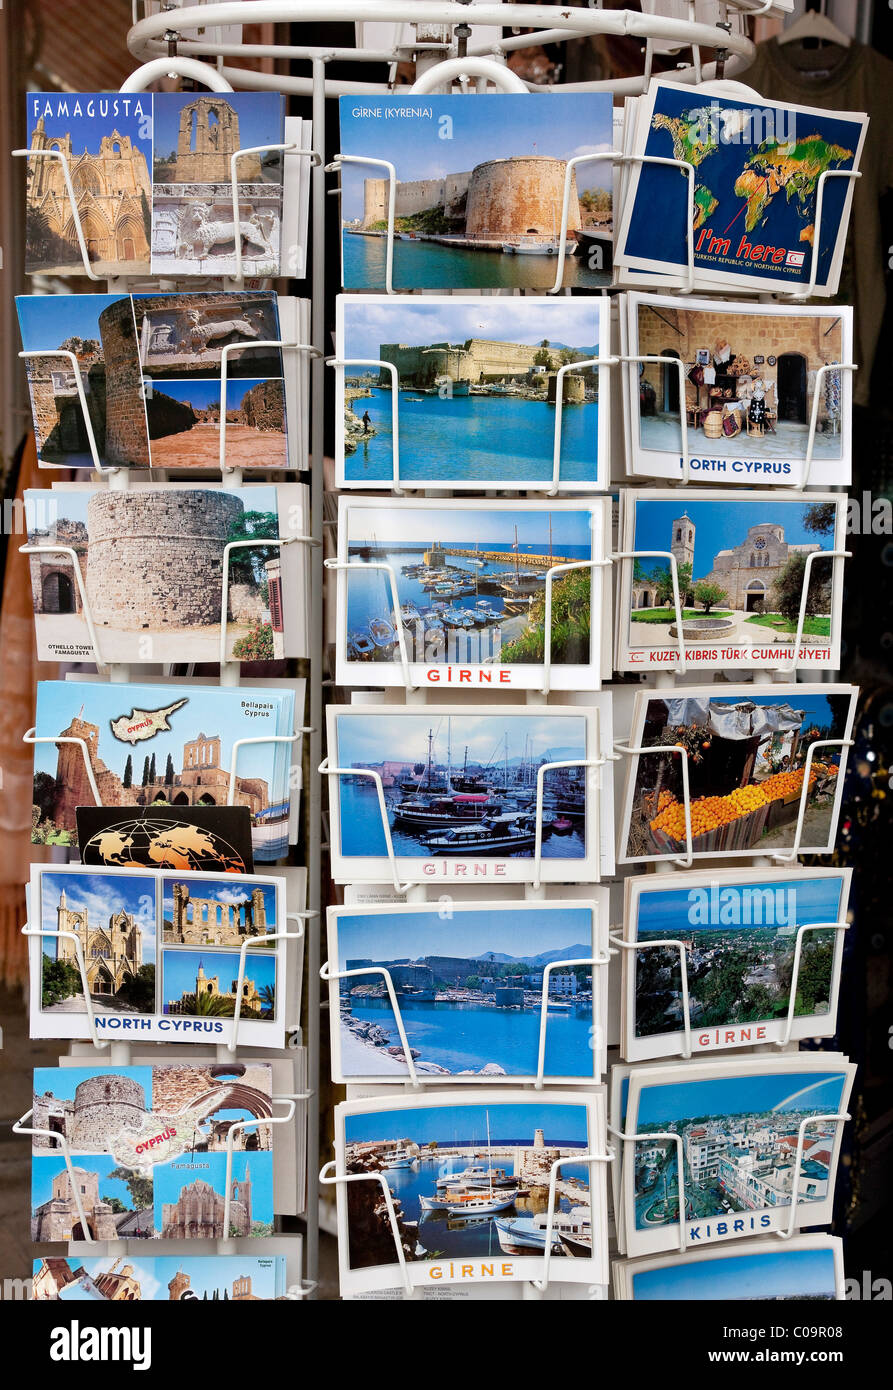 Postcards from North Cyprus, Famagusta, North Cyprus, Turkish, Cyprus, Southern Europe - Stock Image